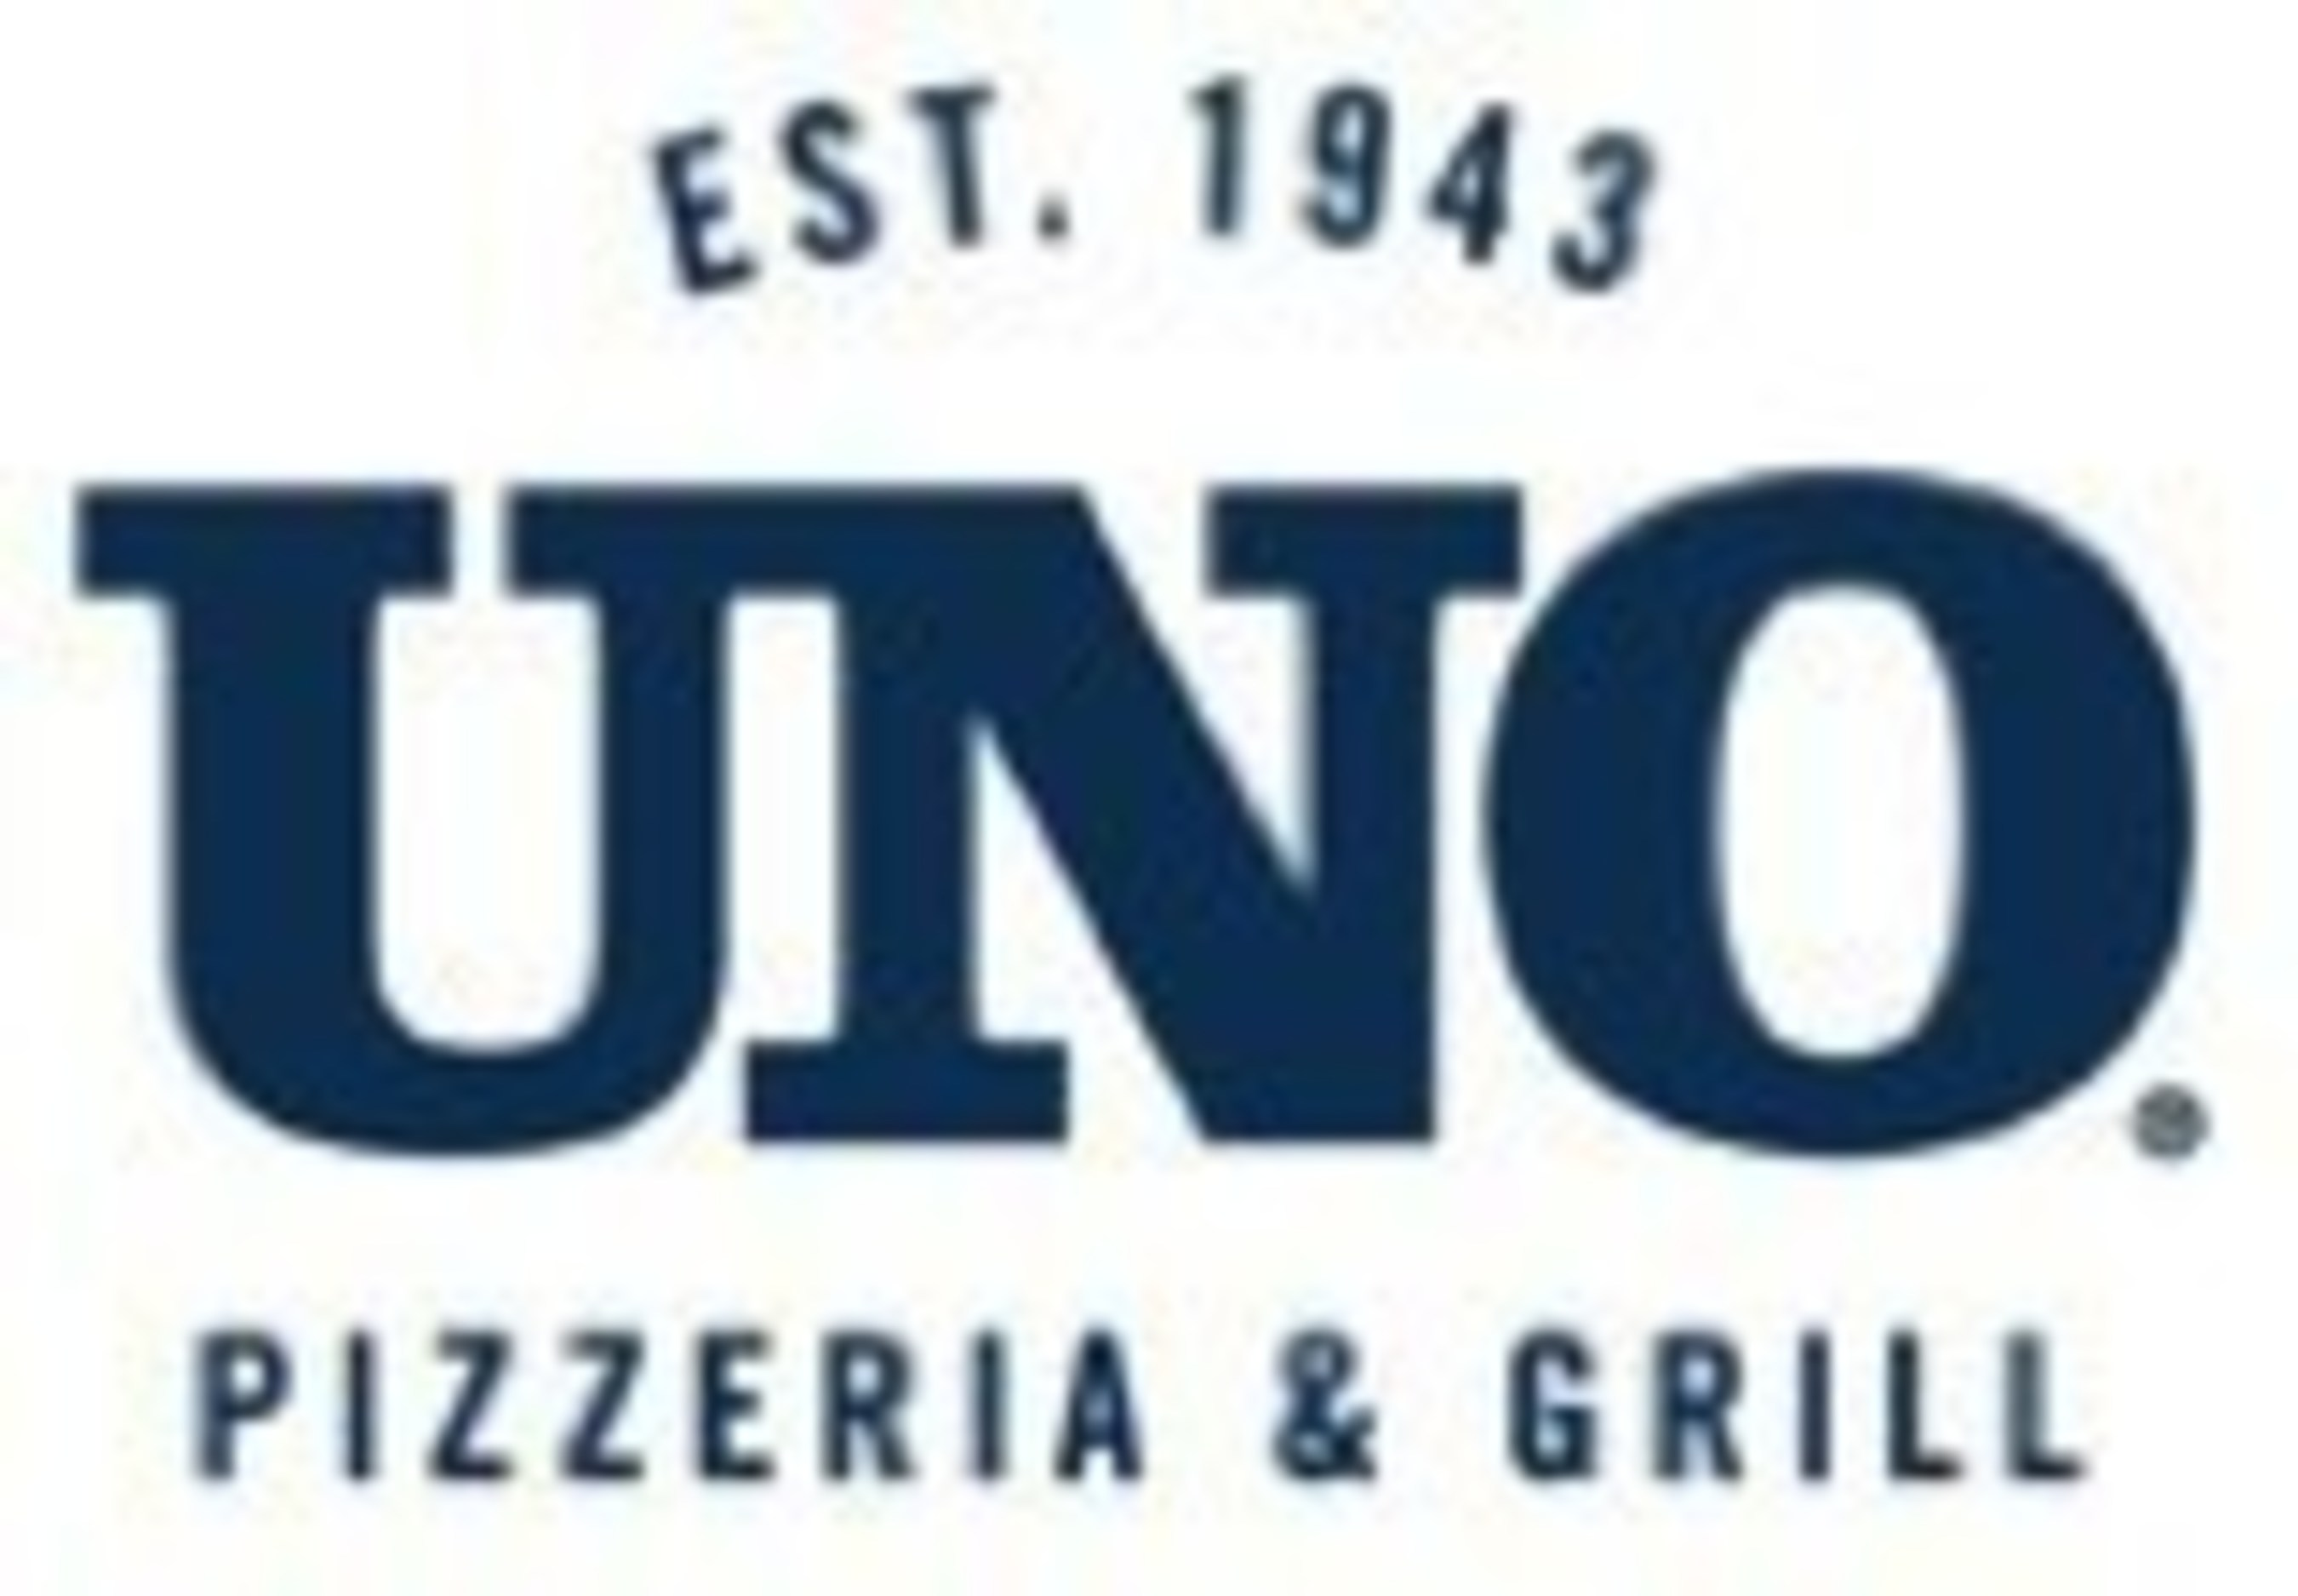 Uno Pizzeria & Grill Introduces a Pizza Crust That You Won't Believe is Gluten Free